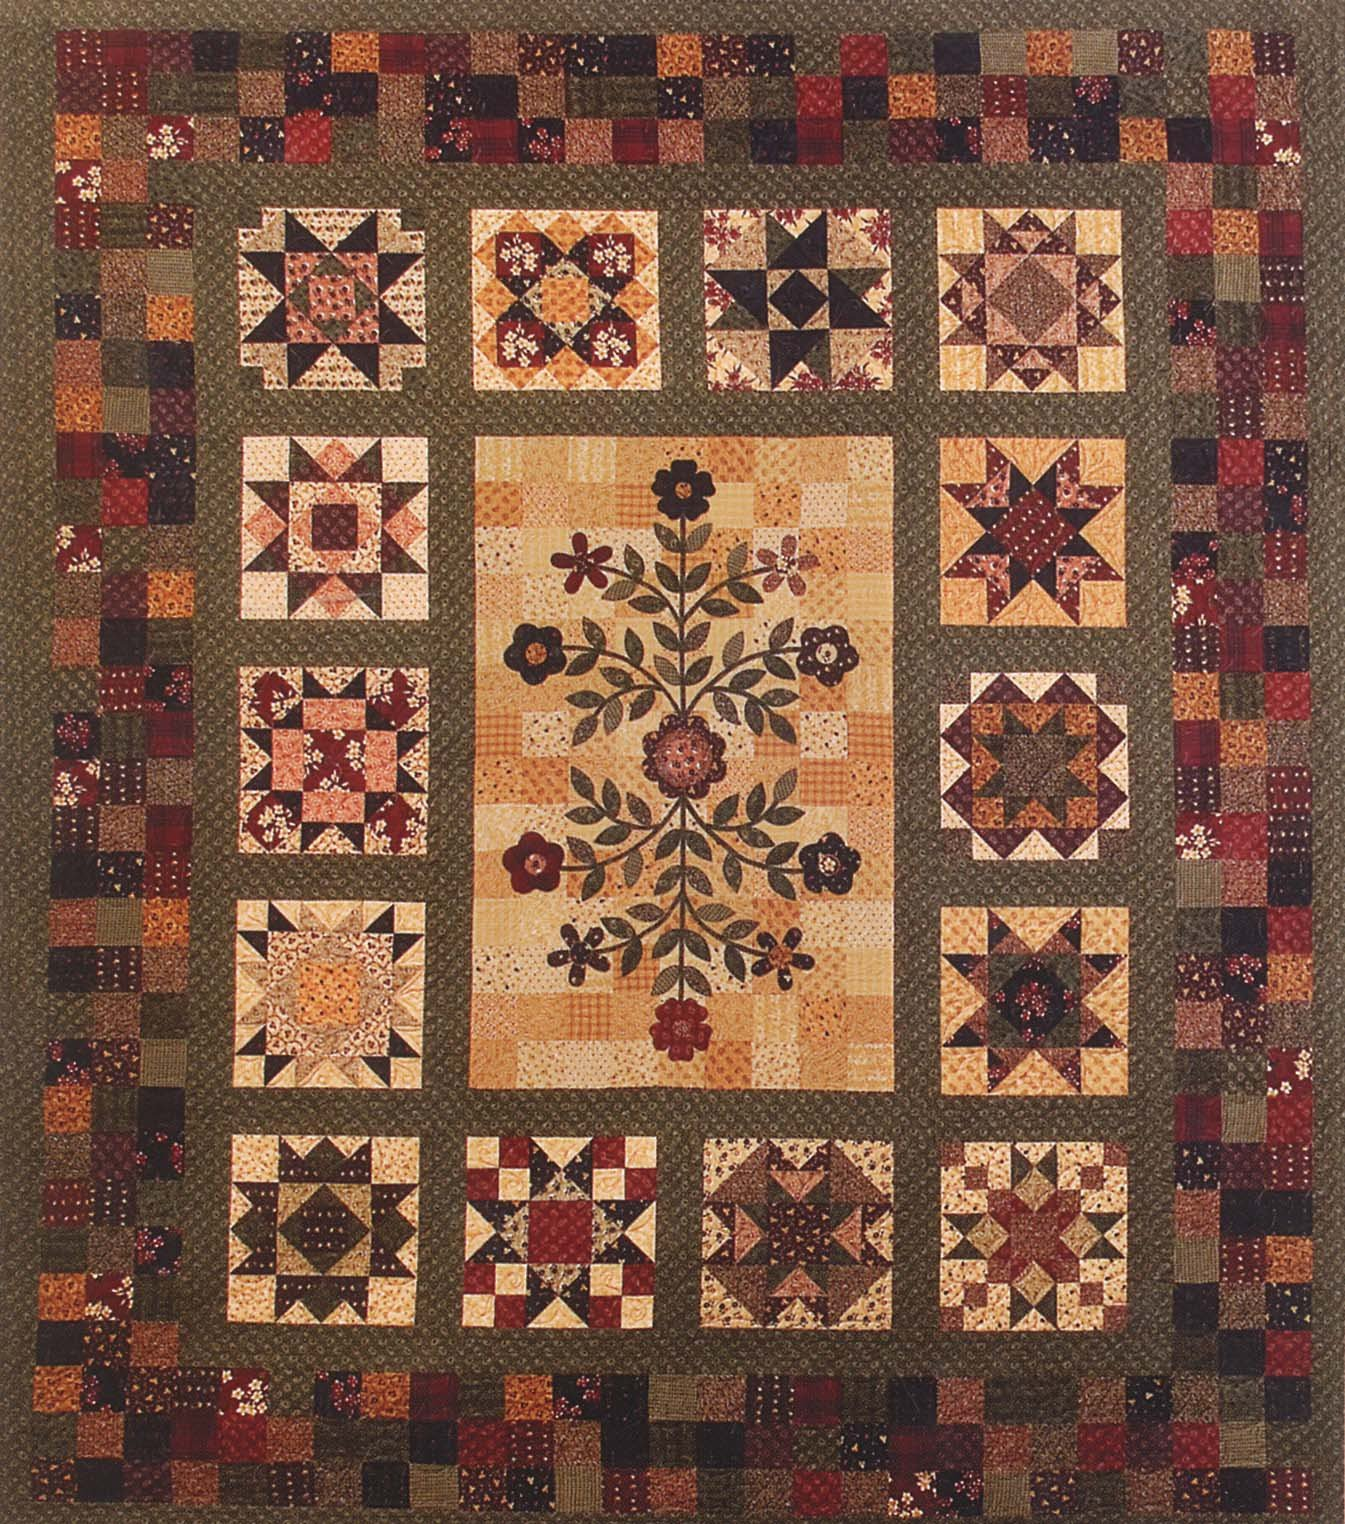 Stars Around the Garden - 9 Month Block of the Month in one pattern